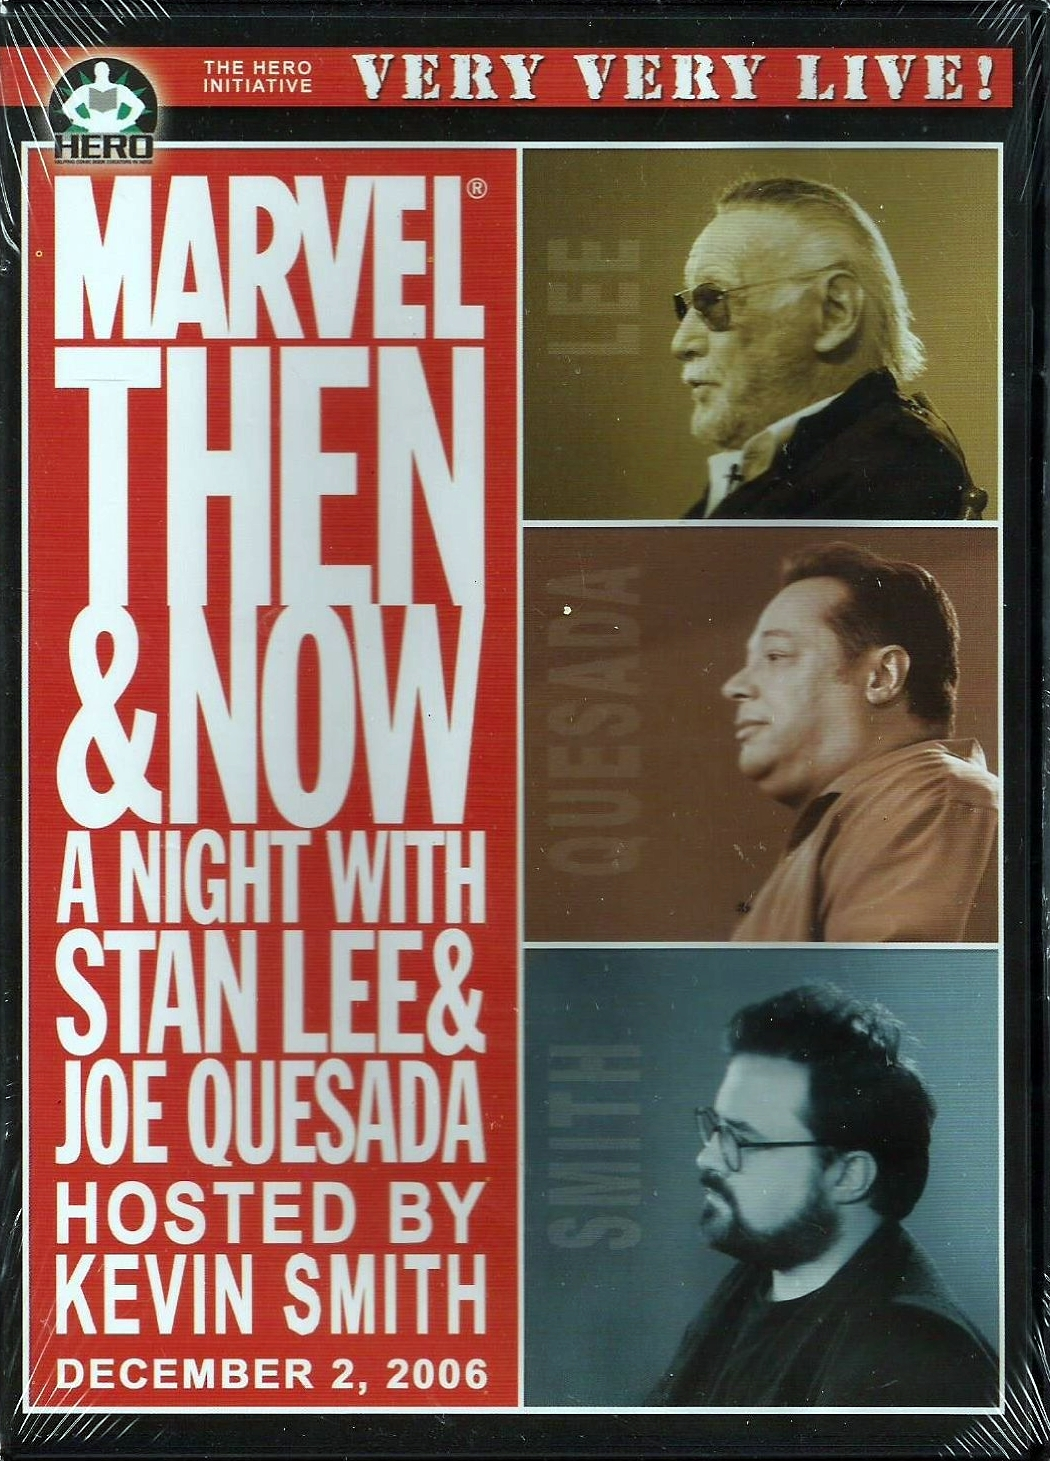 Live - Marvel Then & Now - A Night With Stan Lee, Joe Quesada, Hosted by Kevin Smith